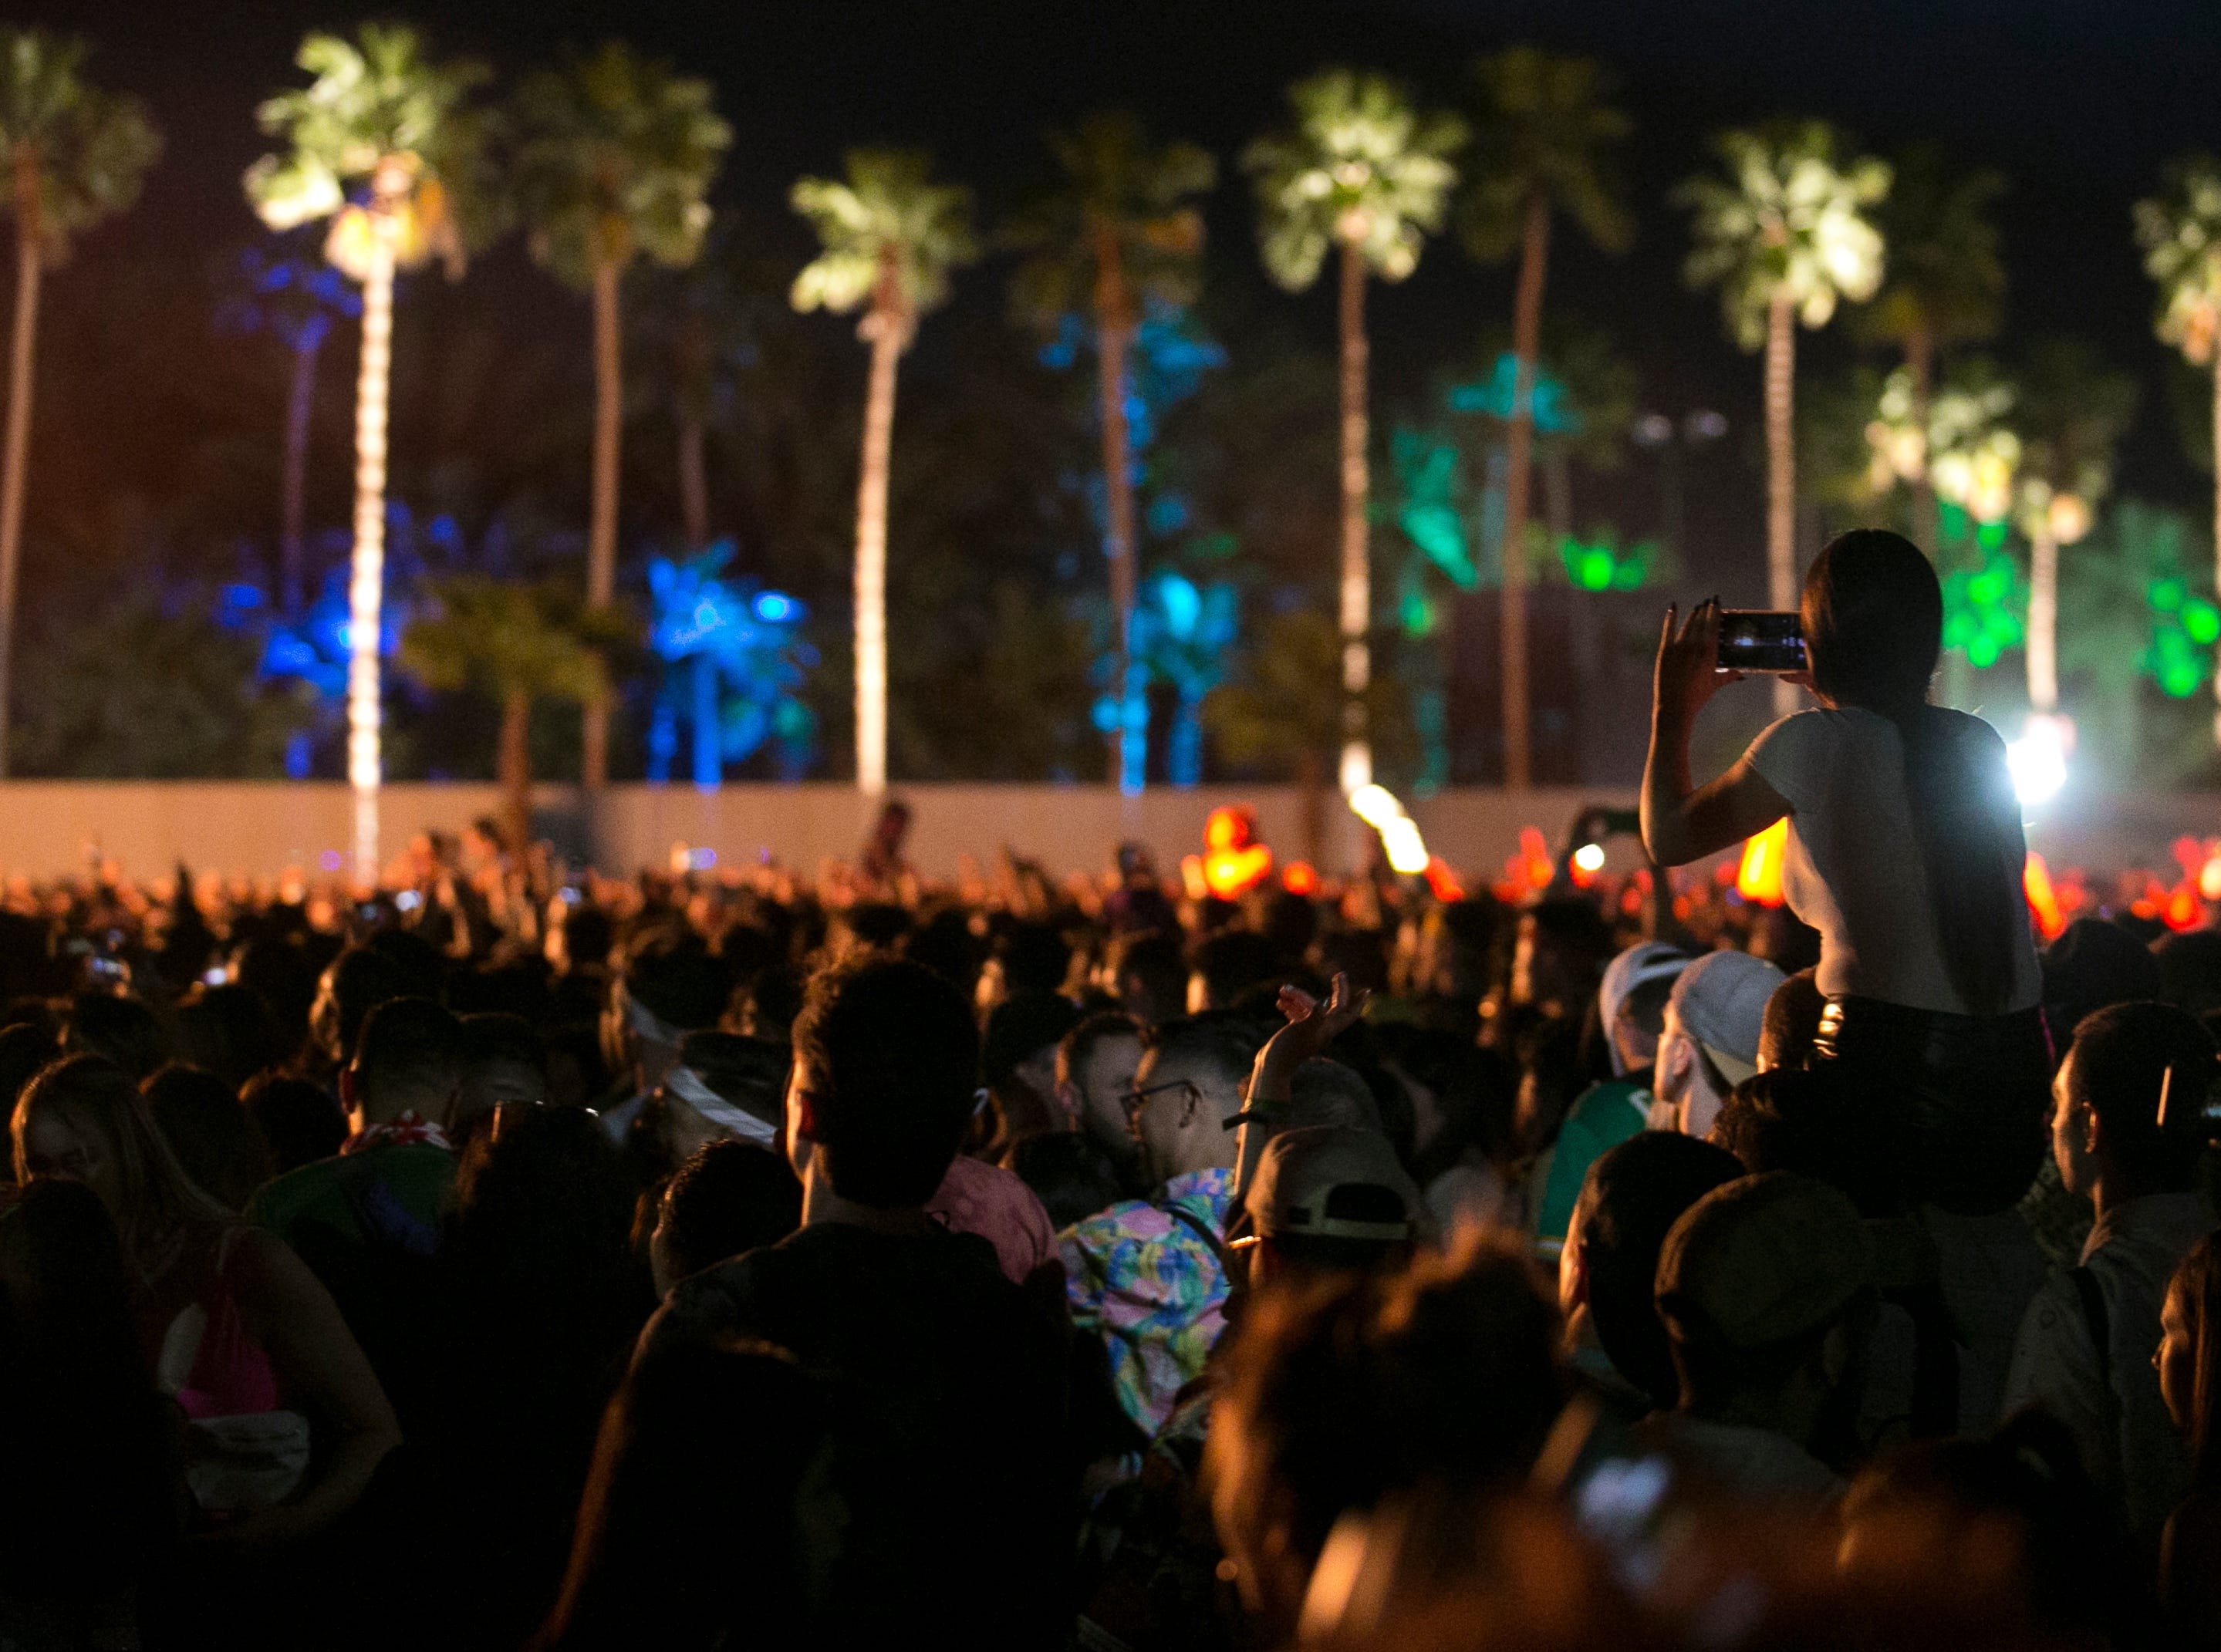 Festival goers watch DJ Snake perform at the Coachella Valley Music and Arts Festival in Indio, Calif. on Fri. April 12, 2019.